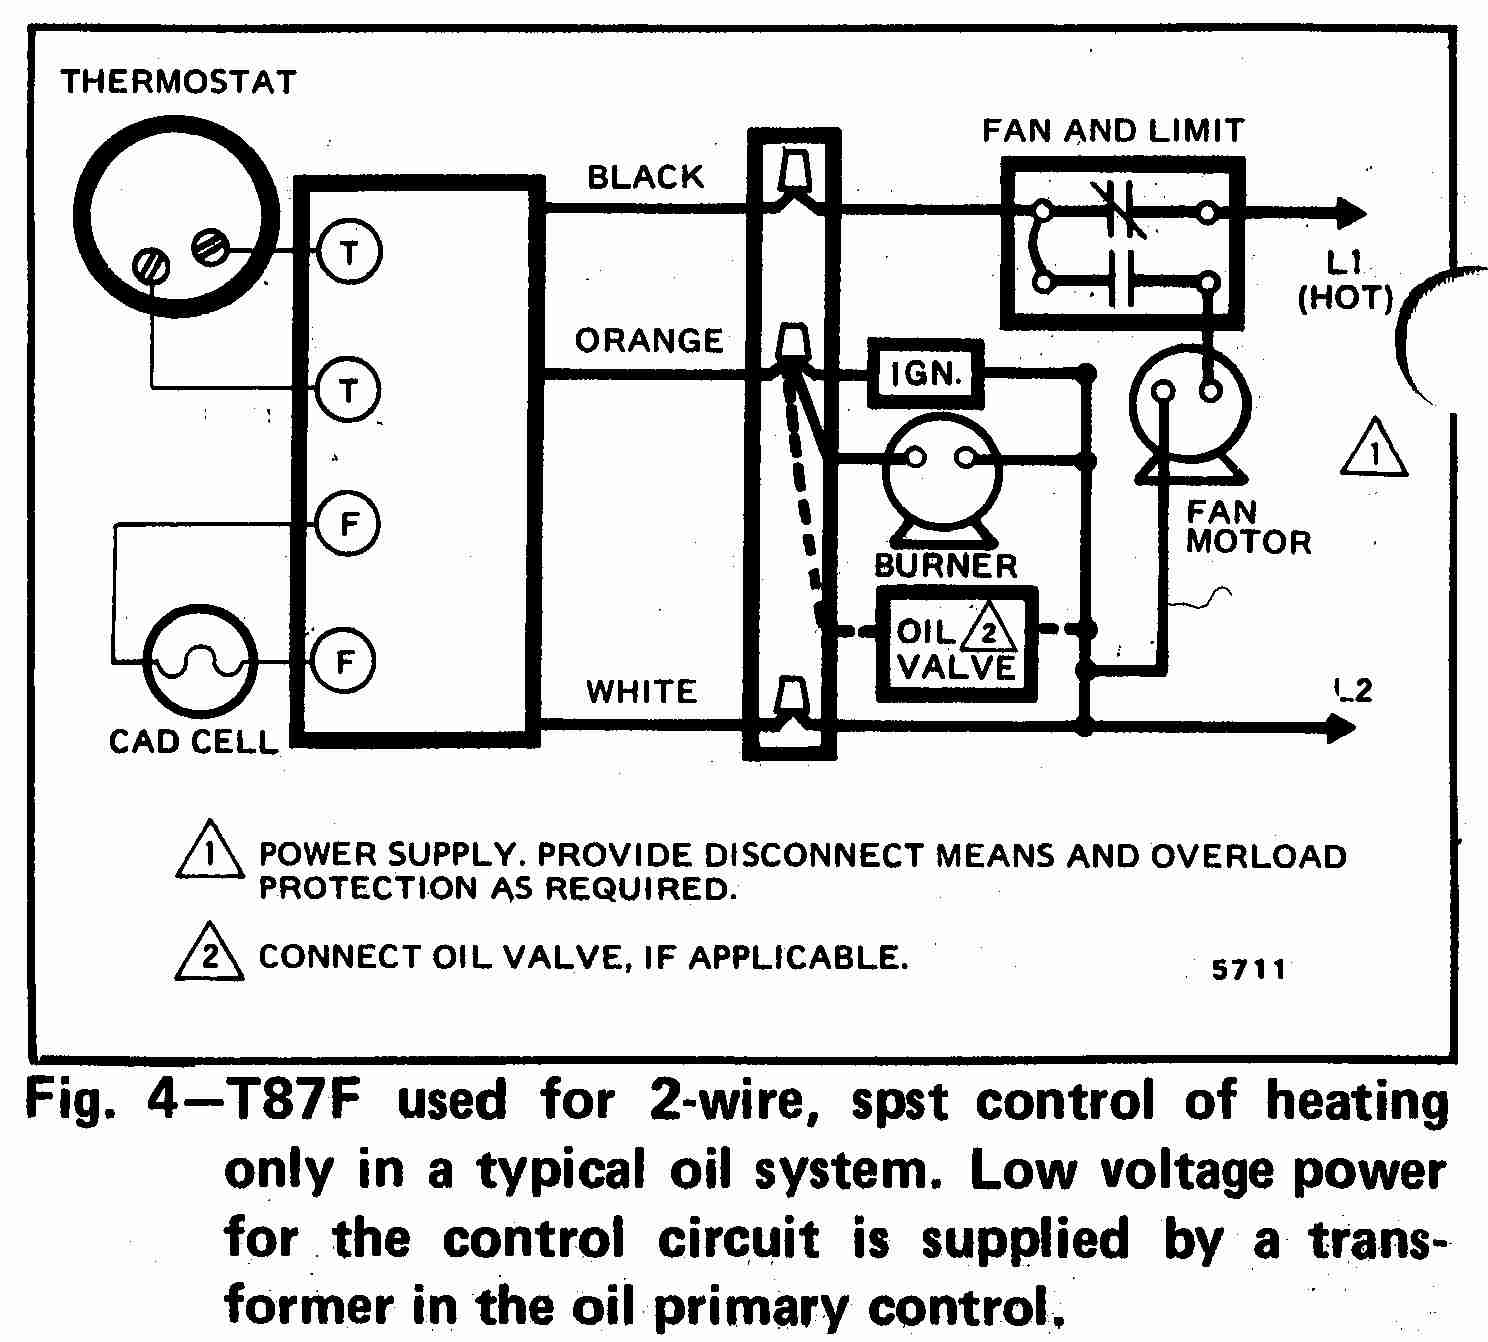 TT_T87F_0002_2W_DJF room thermostat wiring diagrams for hvac systems honeywell thermostat wiring diagram at honlapkeszites.co